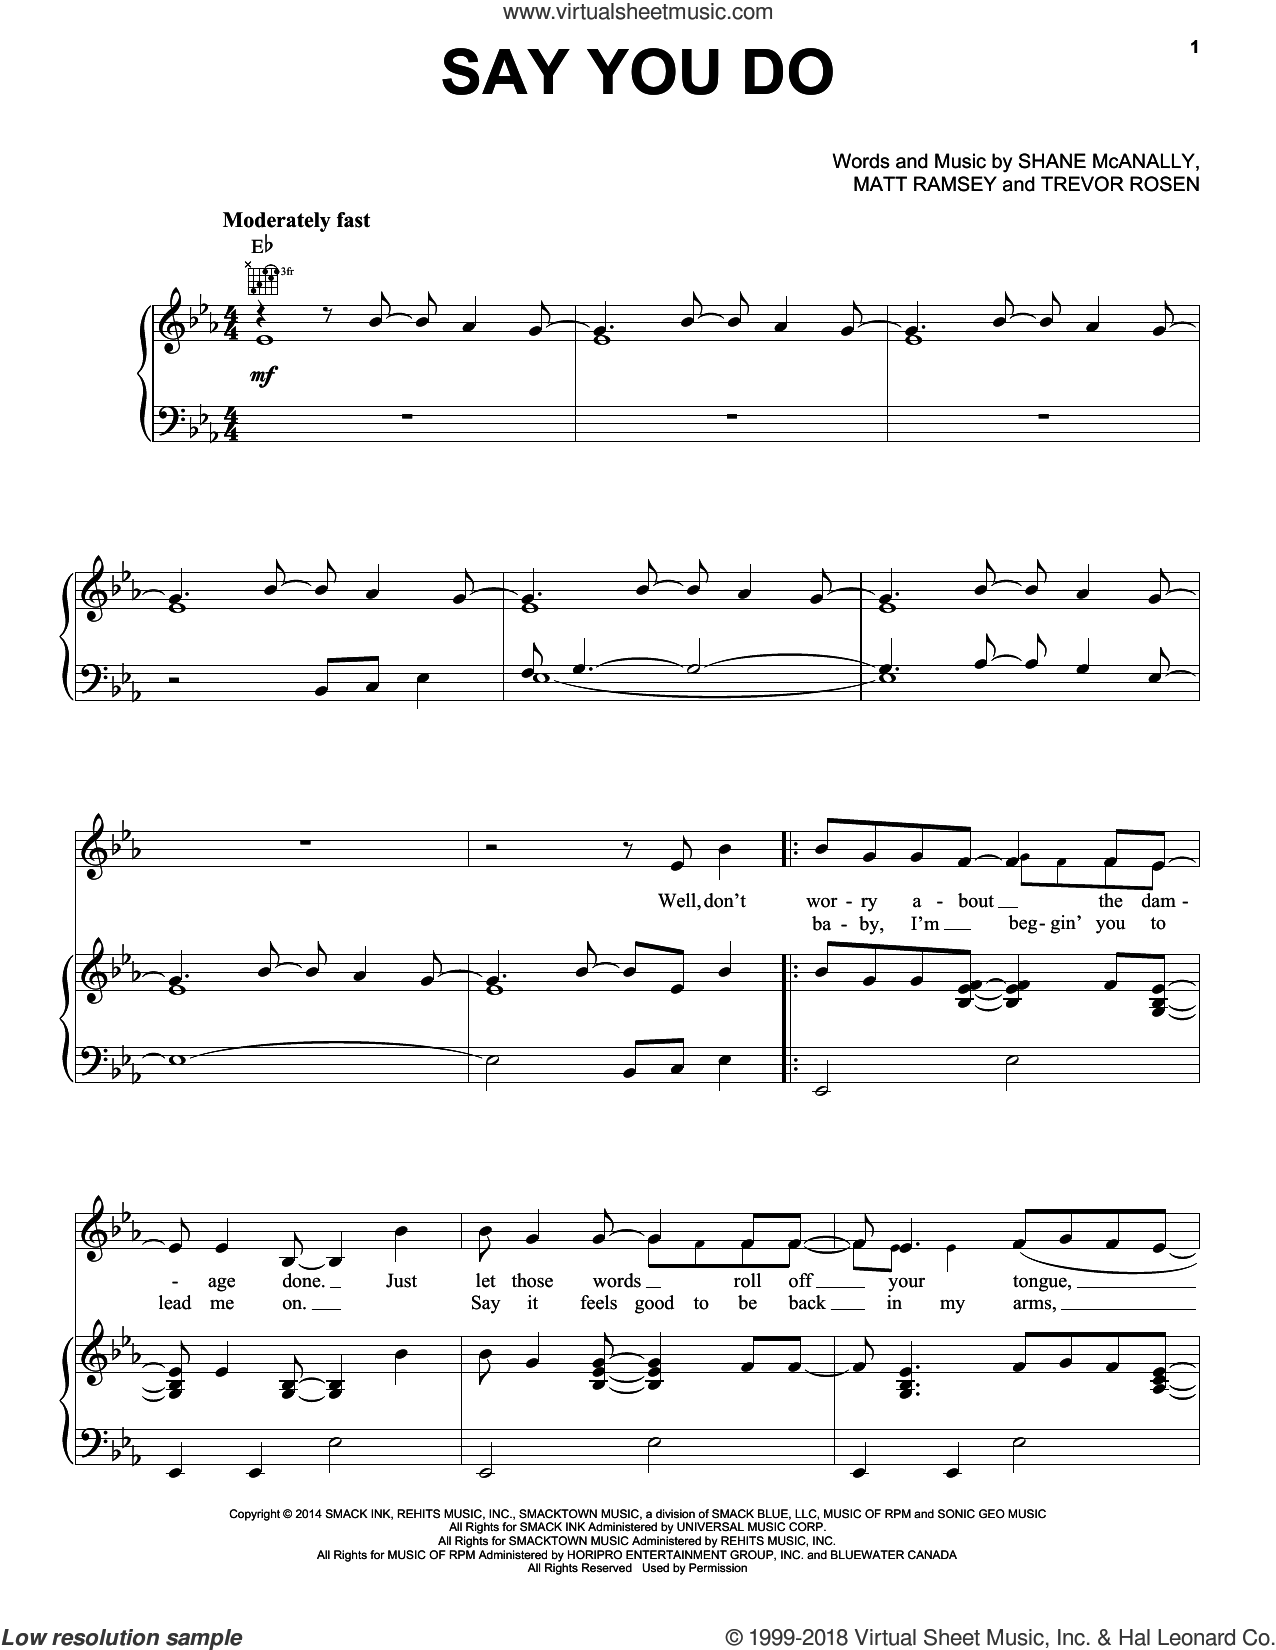 Say You Do sheet music for voice, piano or guitar by Dierks Bentley, Matthew Ramsey, Shane McAnally and Trevor Rosen, intermediate skill level